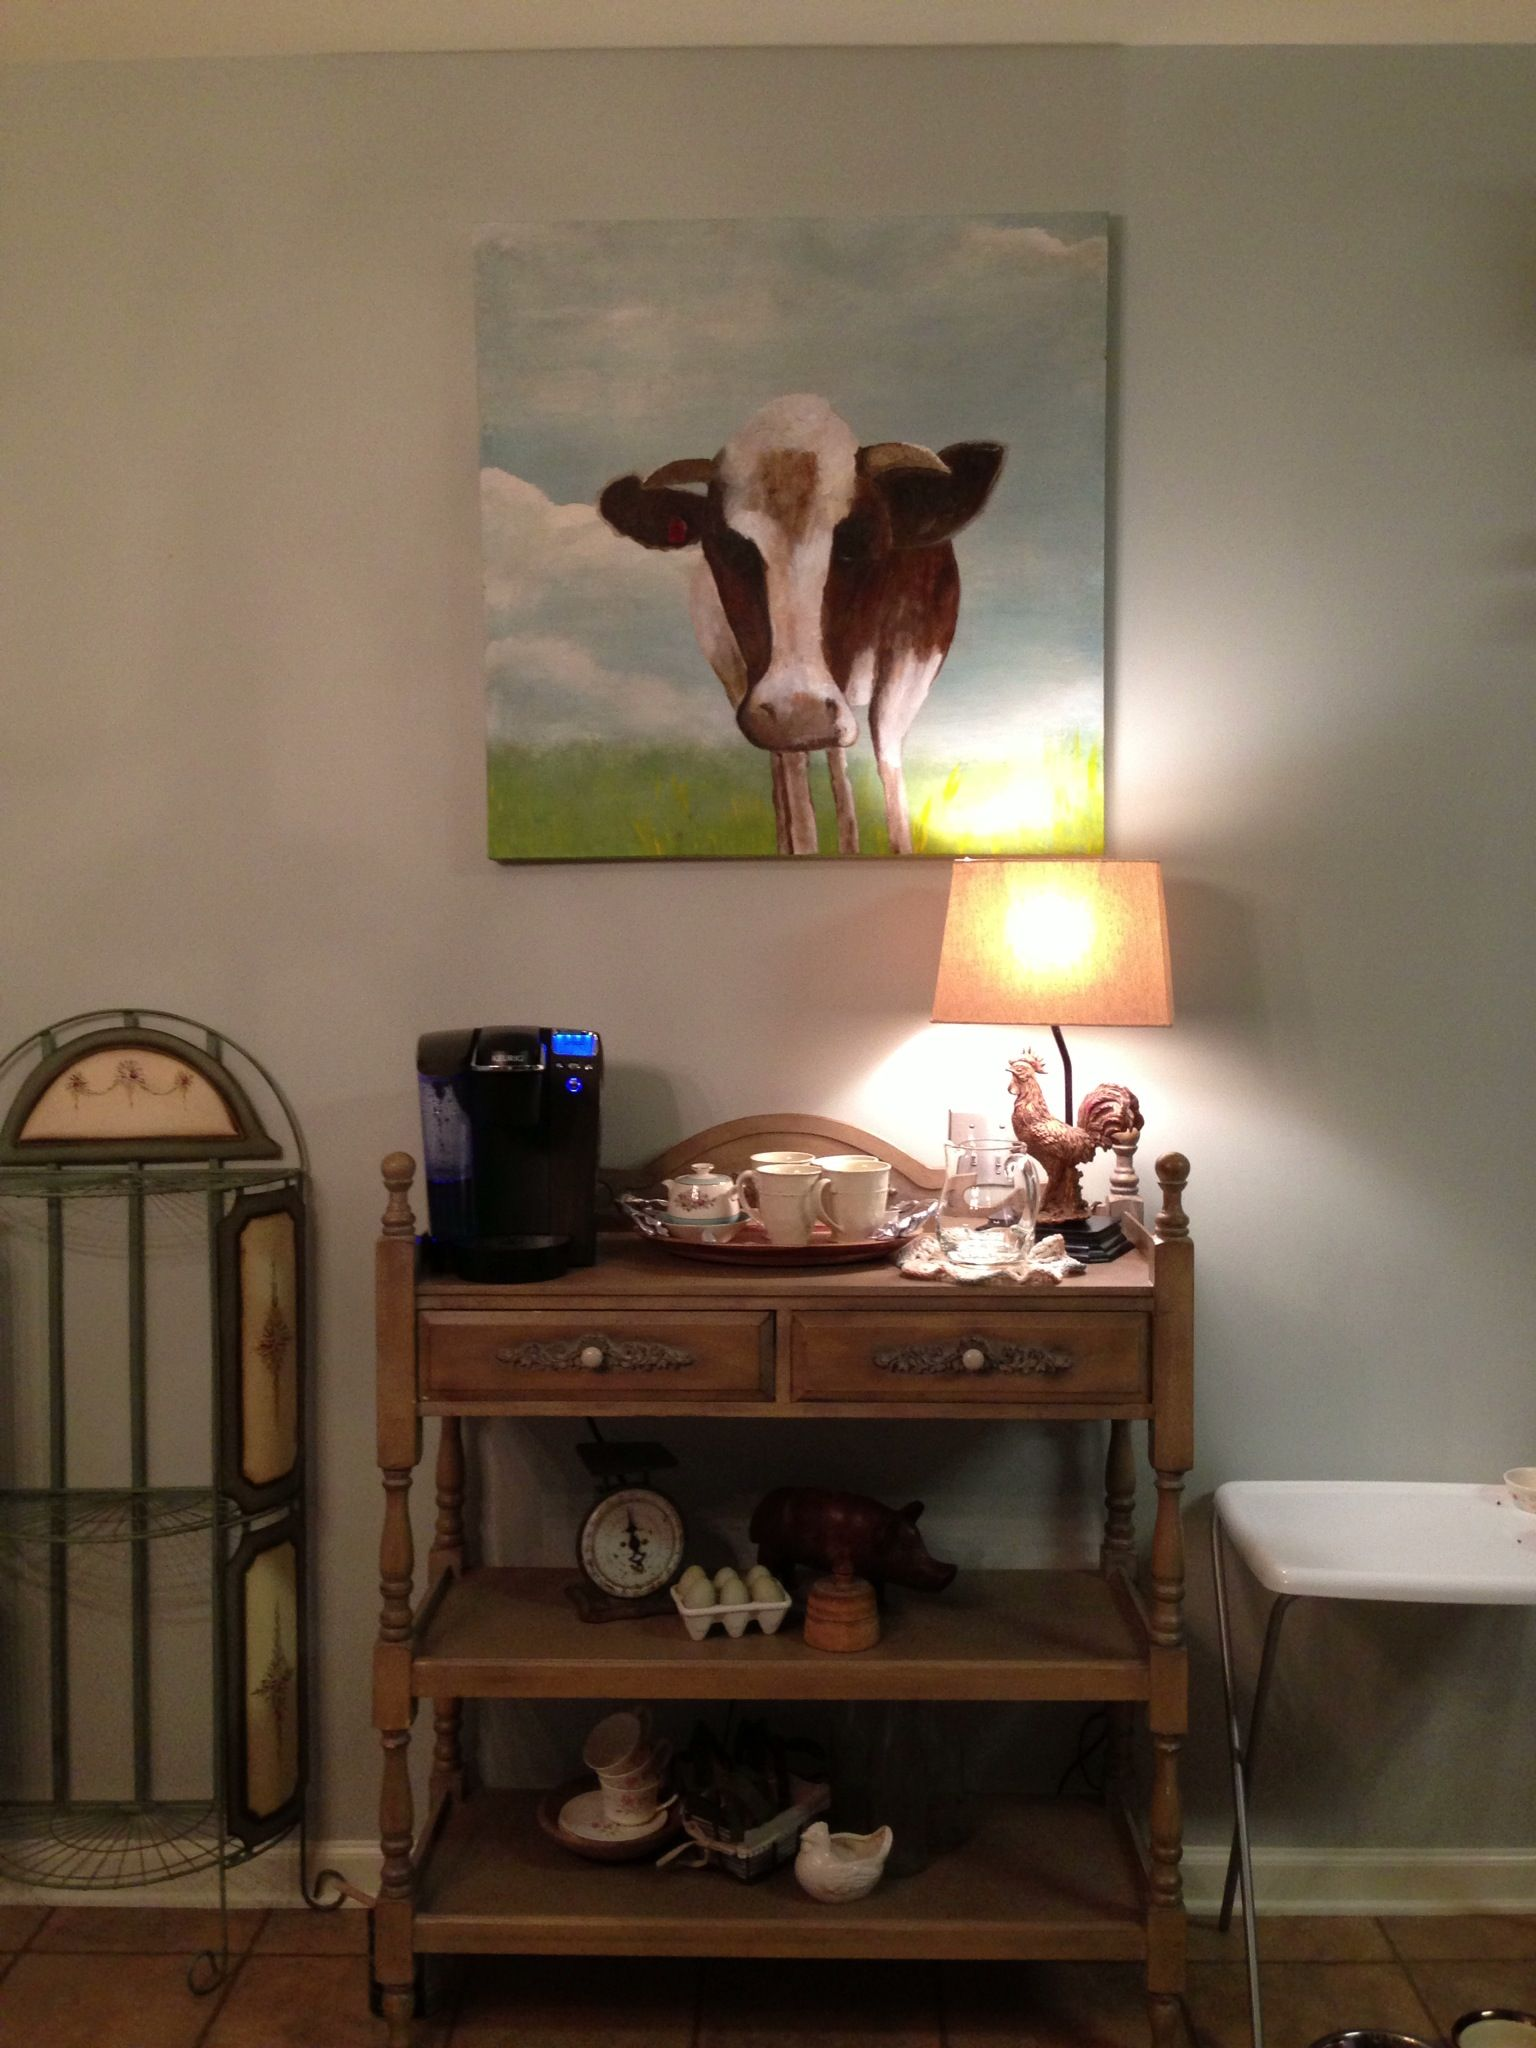 Wilbur The Cow painted by my friend Dawn for above Coffee Station. I love him!